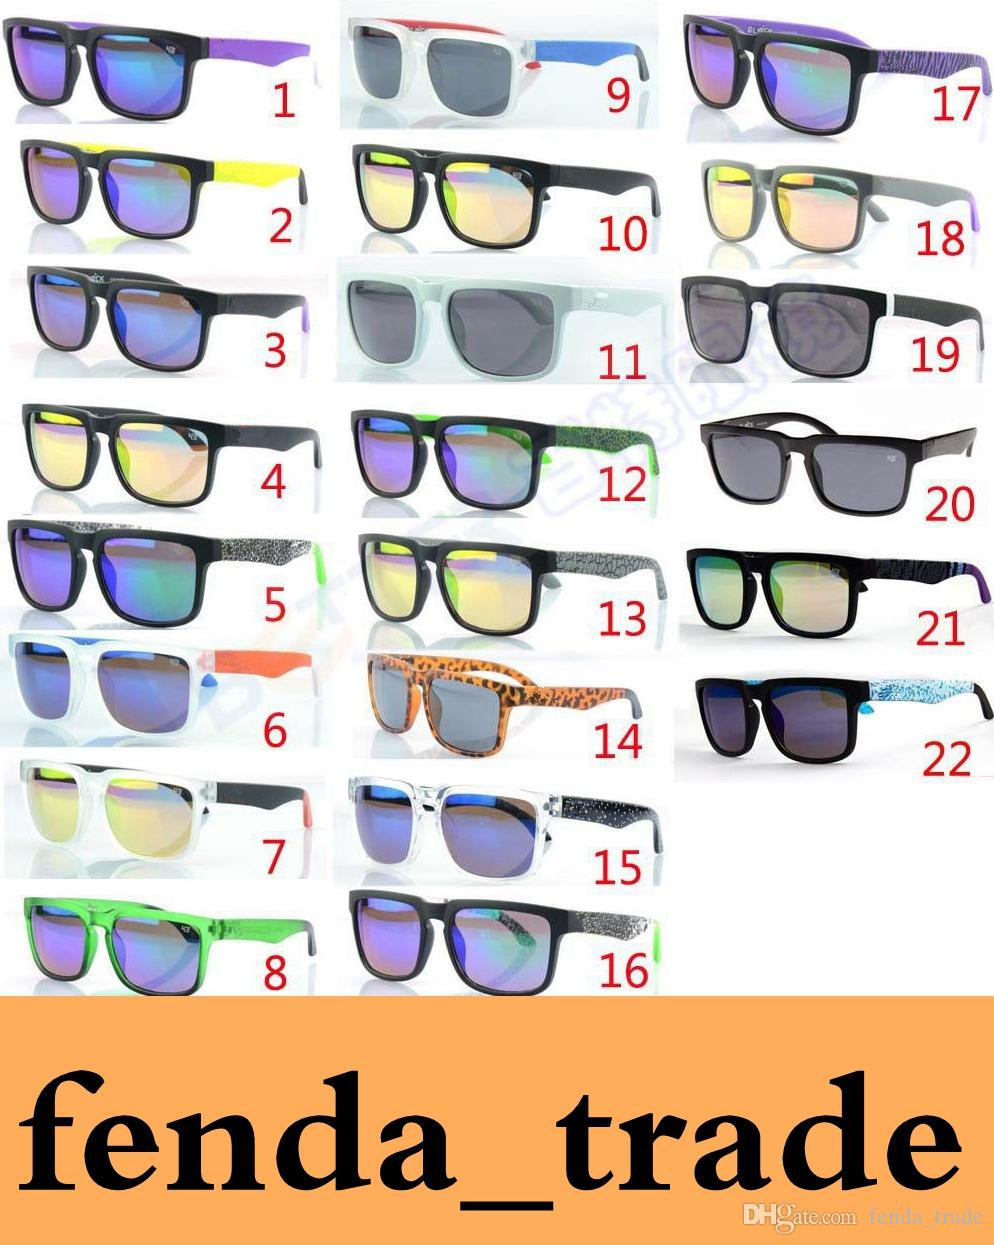 MOQ=50pcs Factory Price CYCLING Sports new fashion colorful reflective coating sunglasses Cycling Sports dazzling Sunglasses 22 colors AAA+